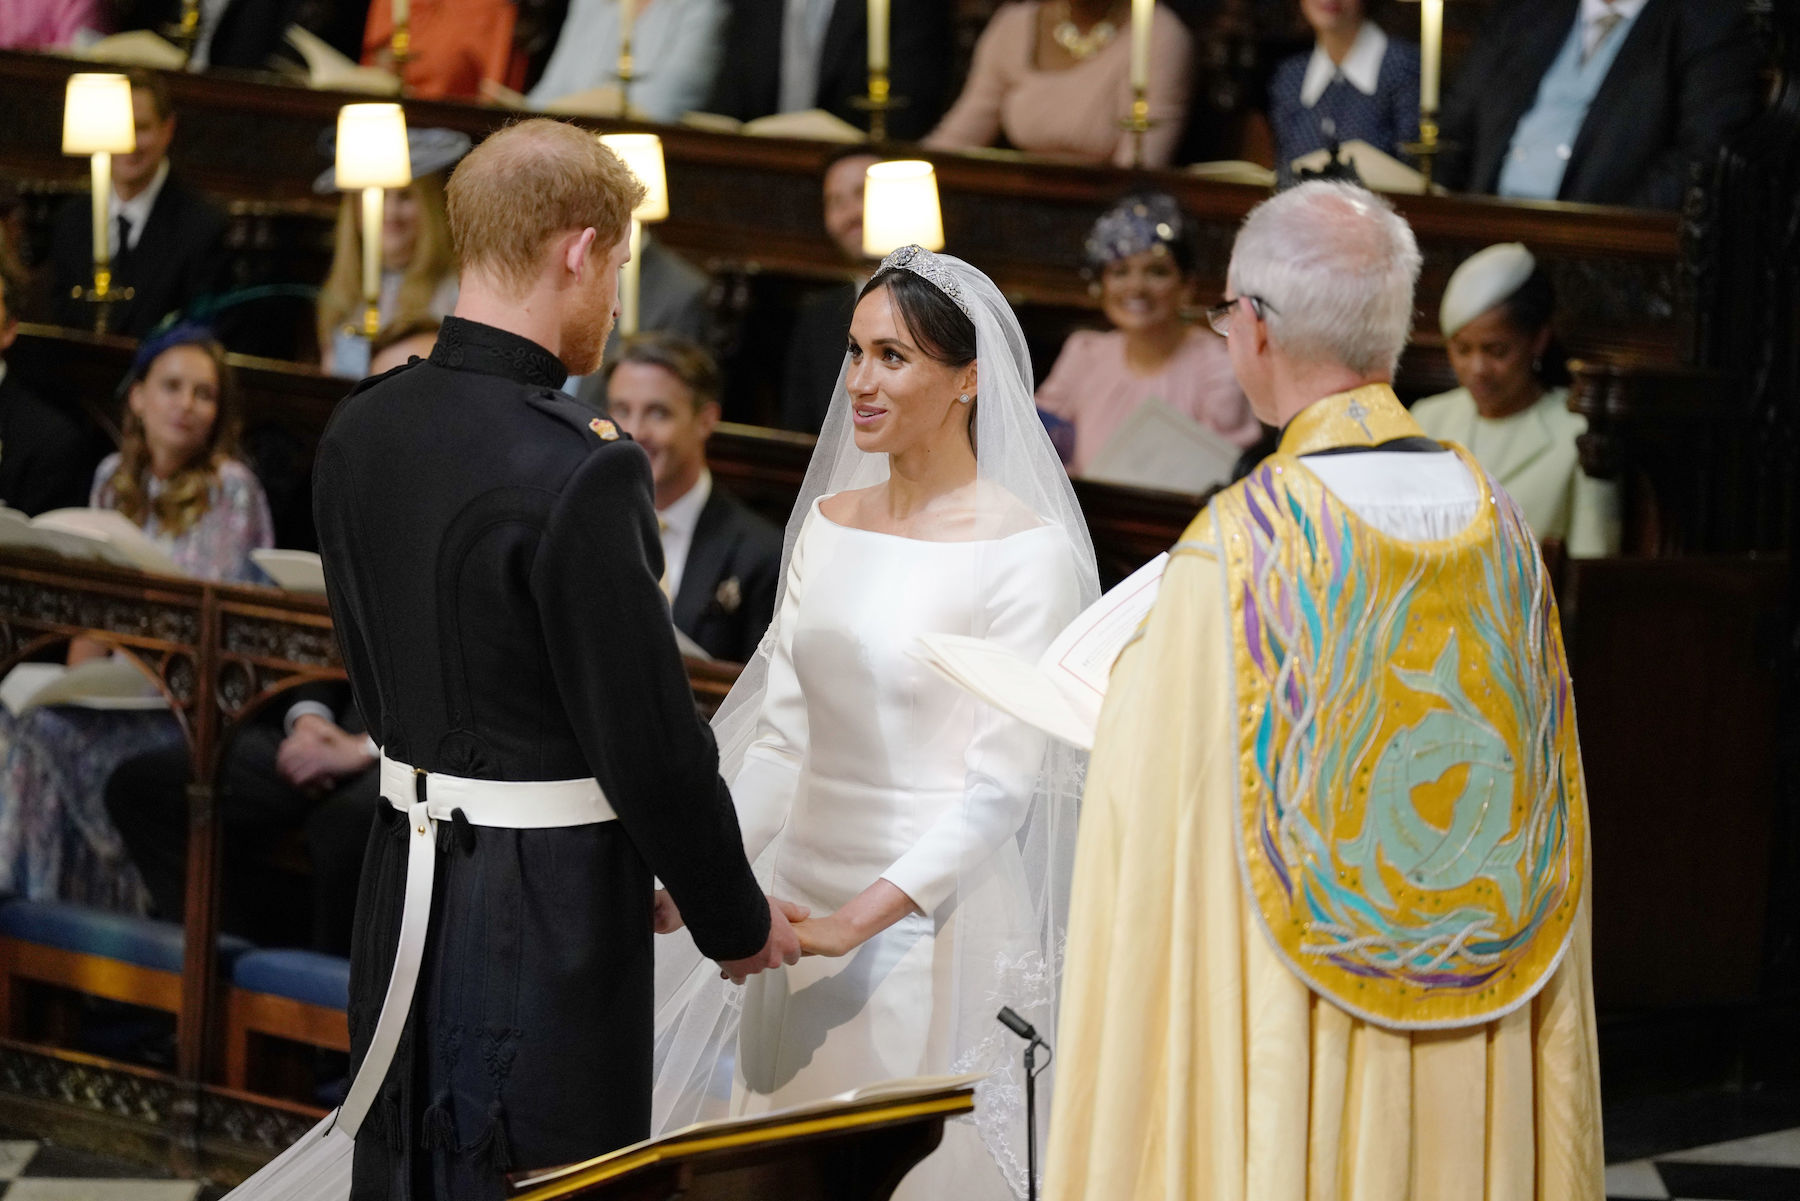 "<div class=""meta image-caption""><div class=""origin-logo origin-image kgo""><span>kgo</span></div><span class=""caption-text"">Britain's Prince Harry, Duke of Sussex, and US fiancee of Britain's Prince Harry Meghan Markle during their wedding ceremony in St George's Chapel. (Dominic Lipinsky/AFP/Getty Images)</span></div>"